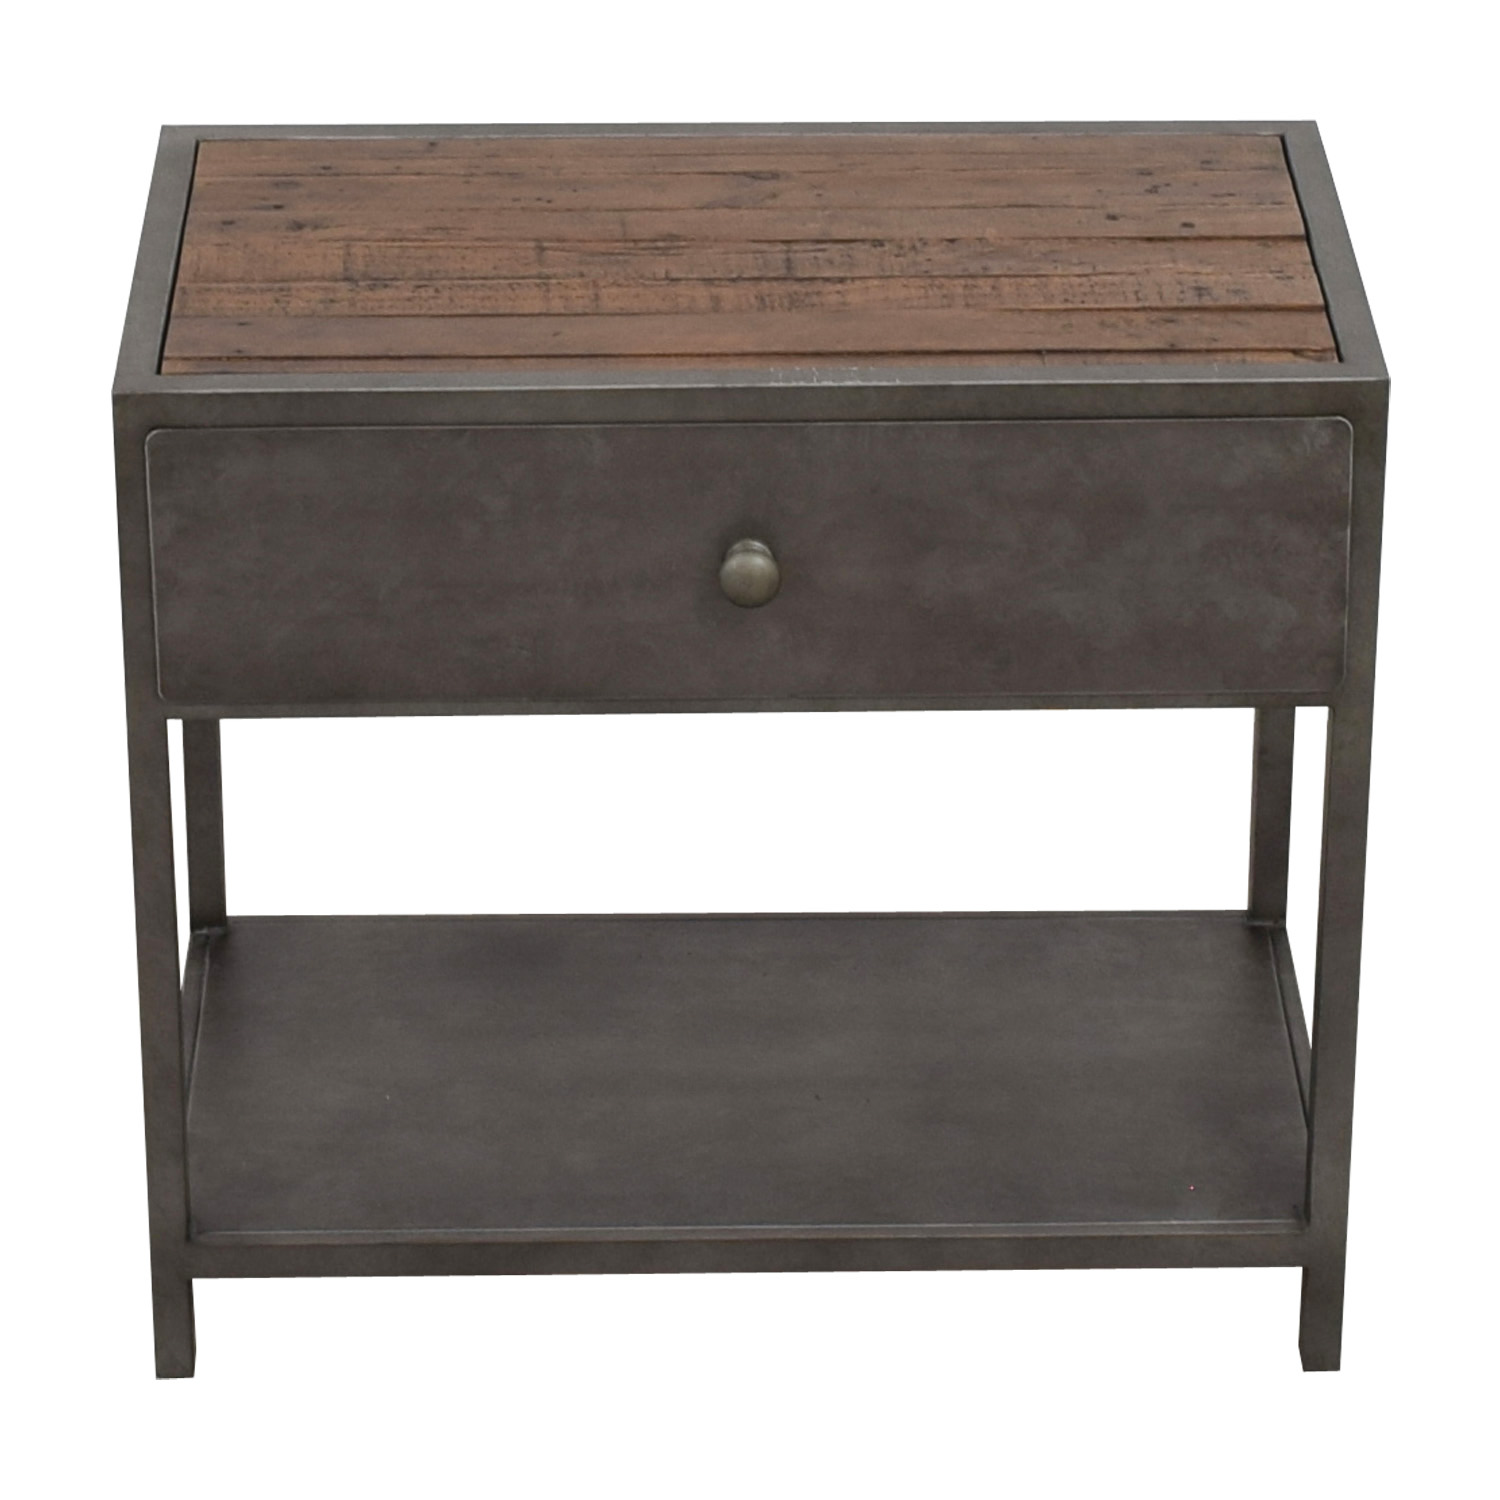 Pottery Barn Pottery Barn Big Daddy Single Drawer Side Table for sale